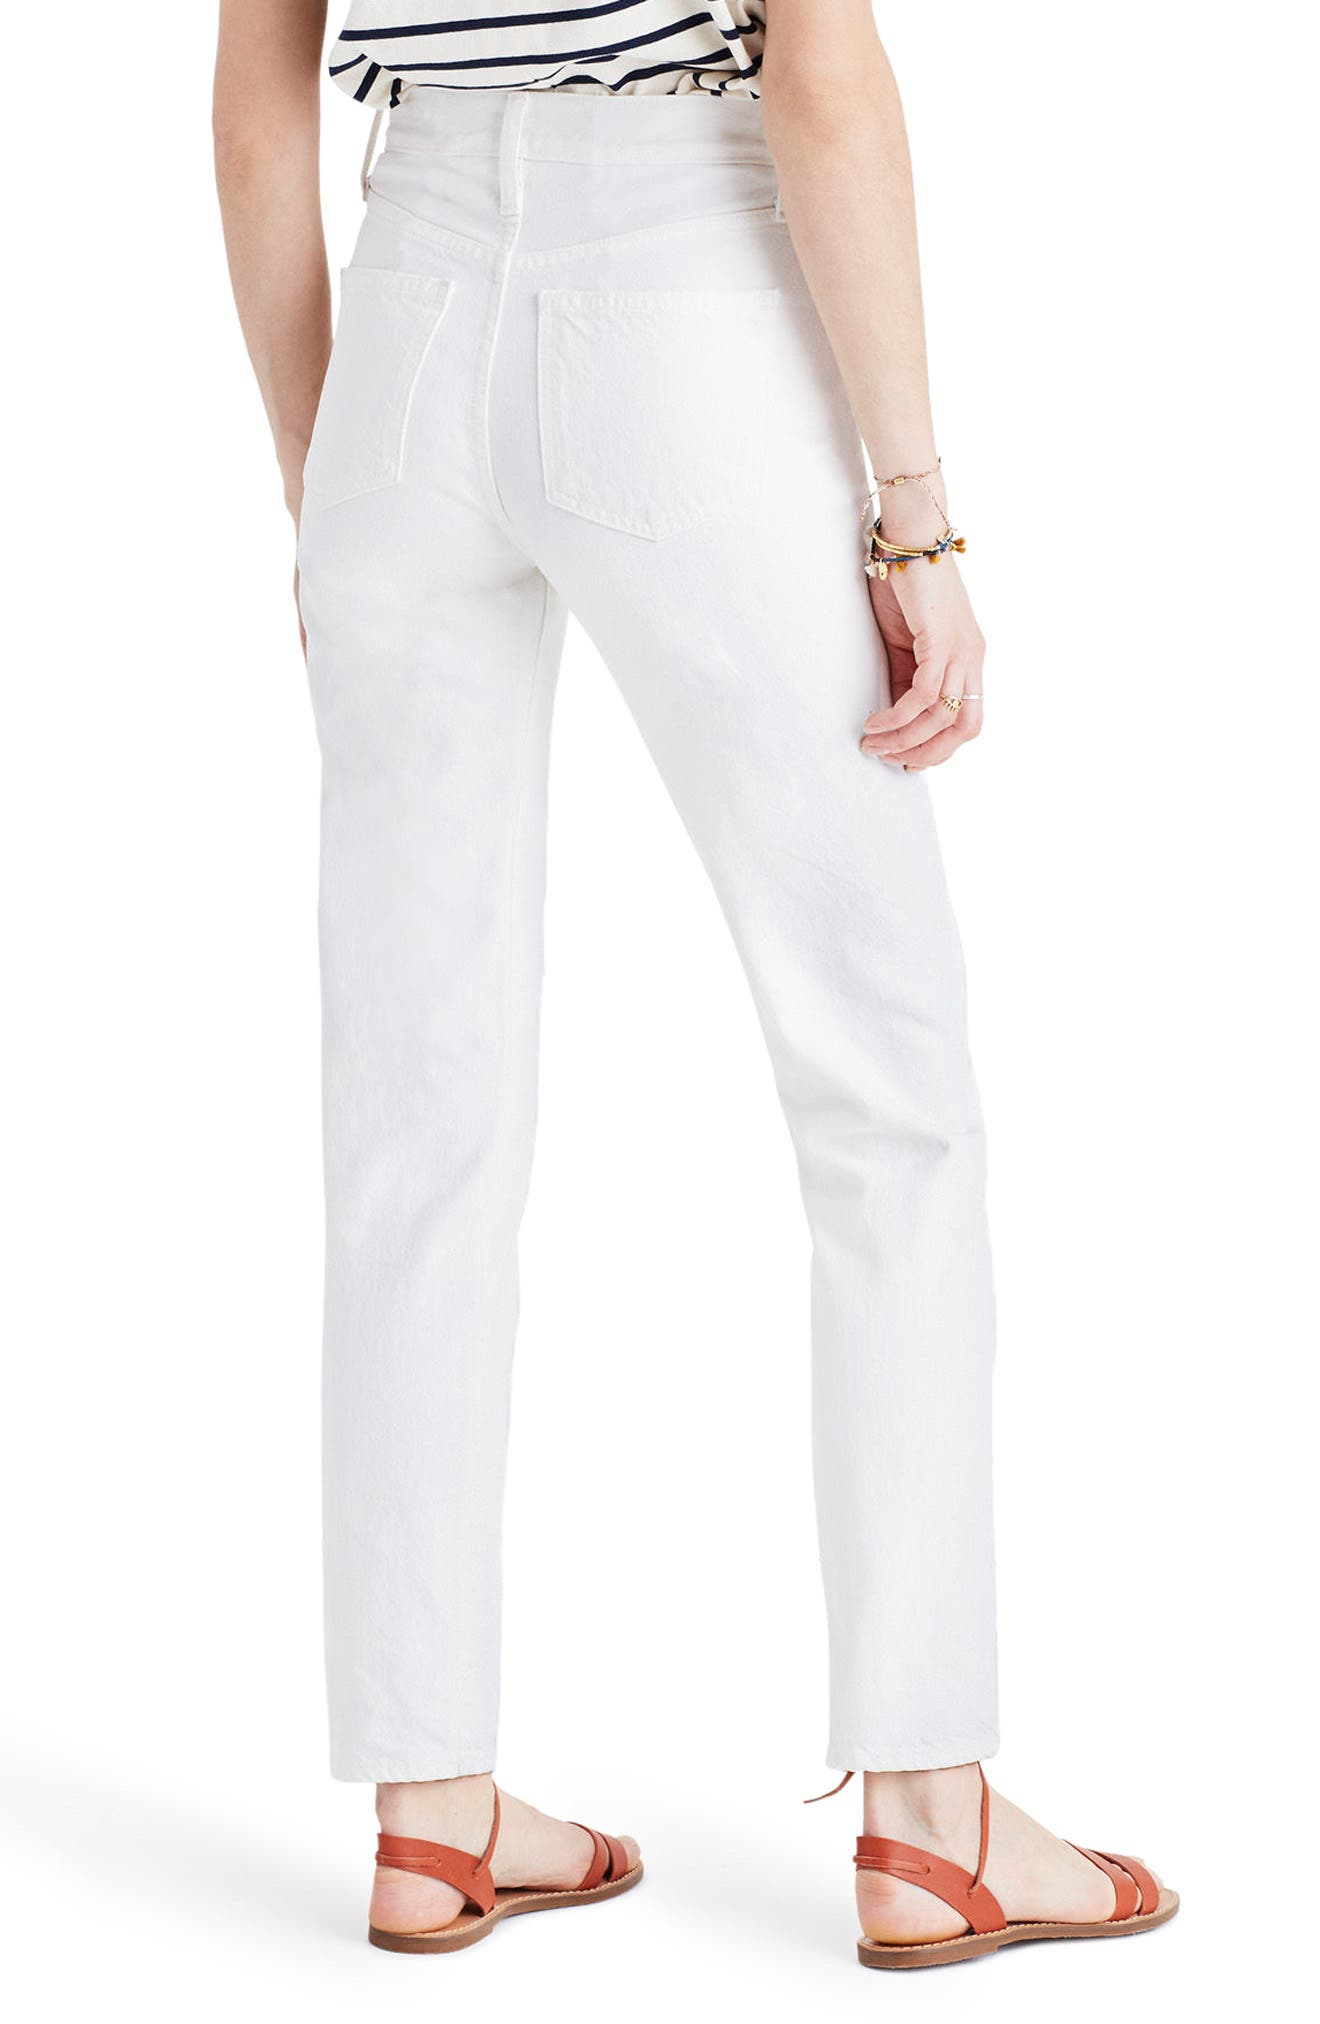 Alternate Image 2  - Madewell Perfect Summer High Waist Ankle Jeans (Tile White)